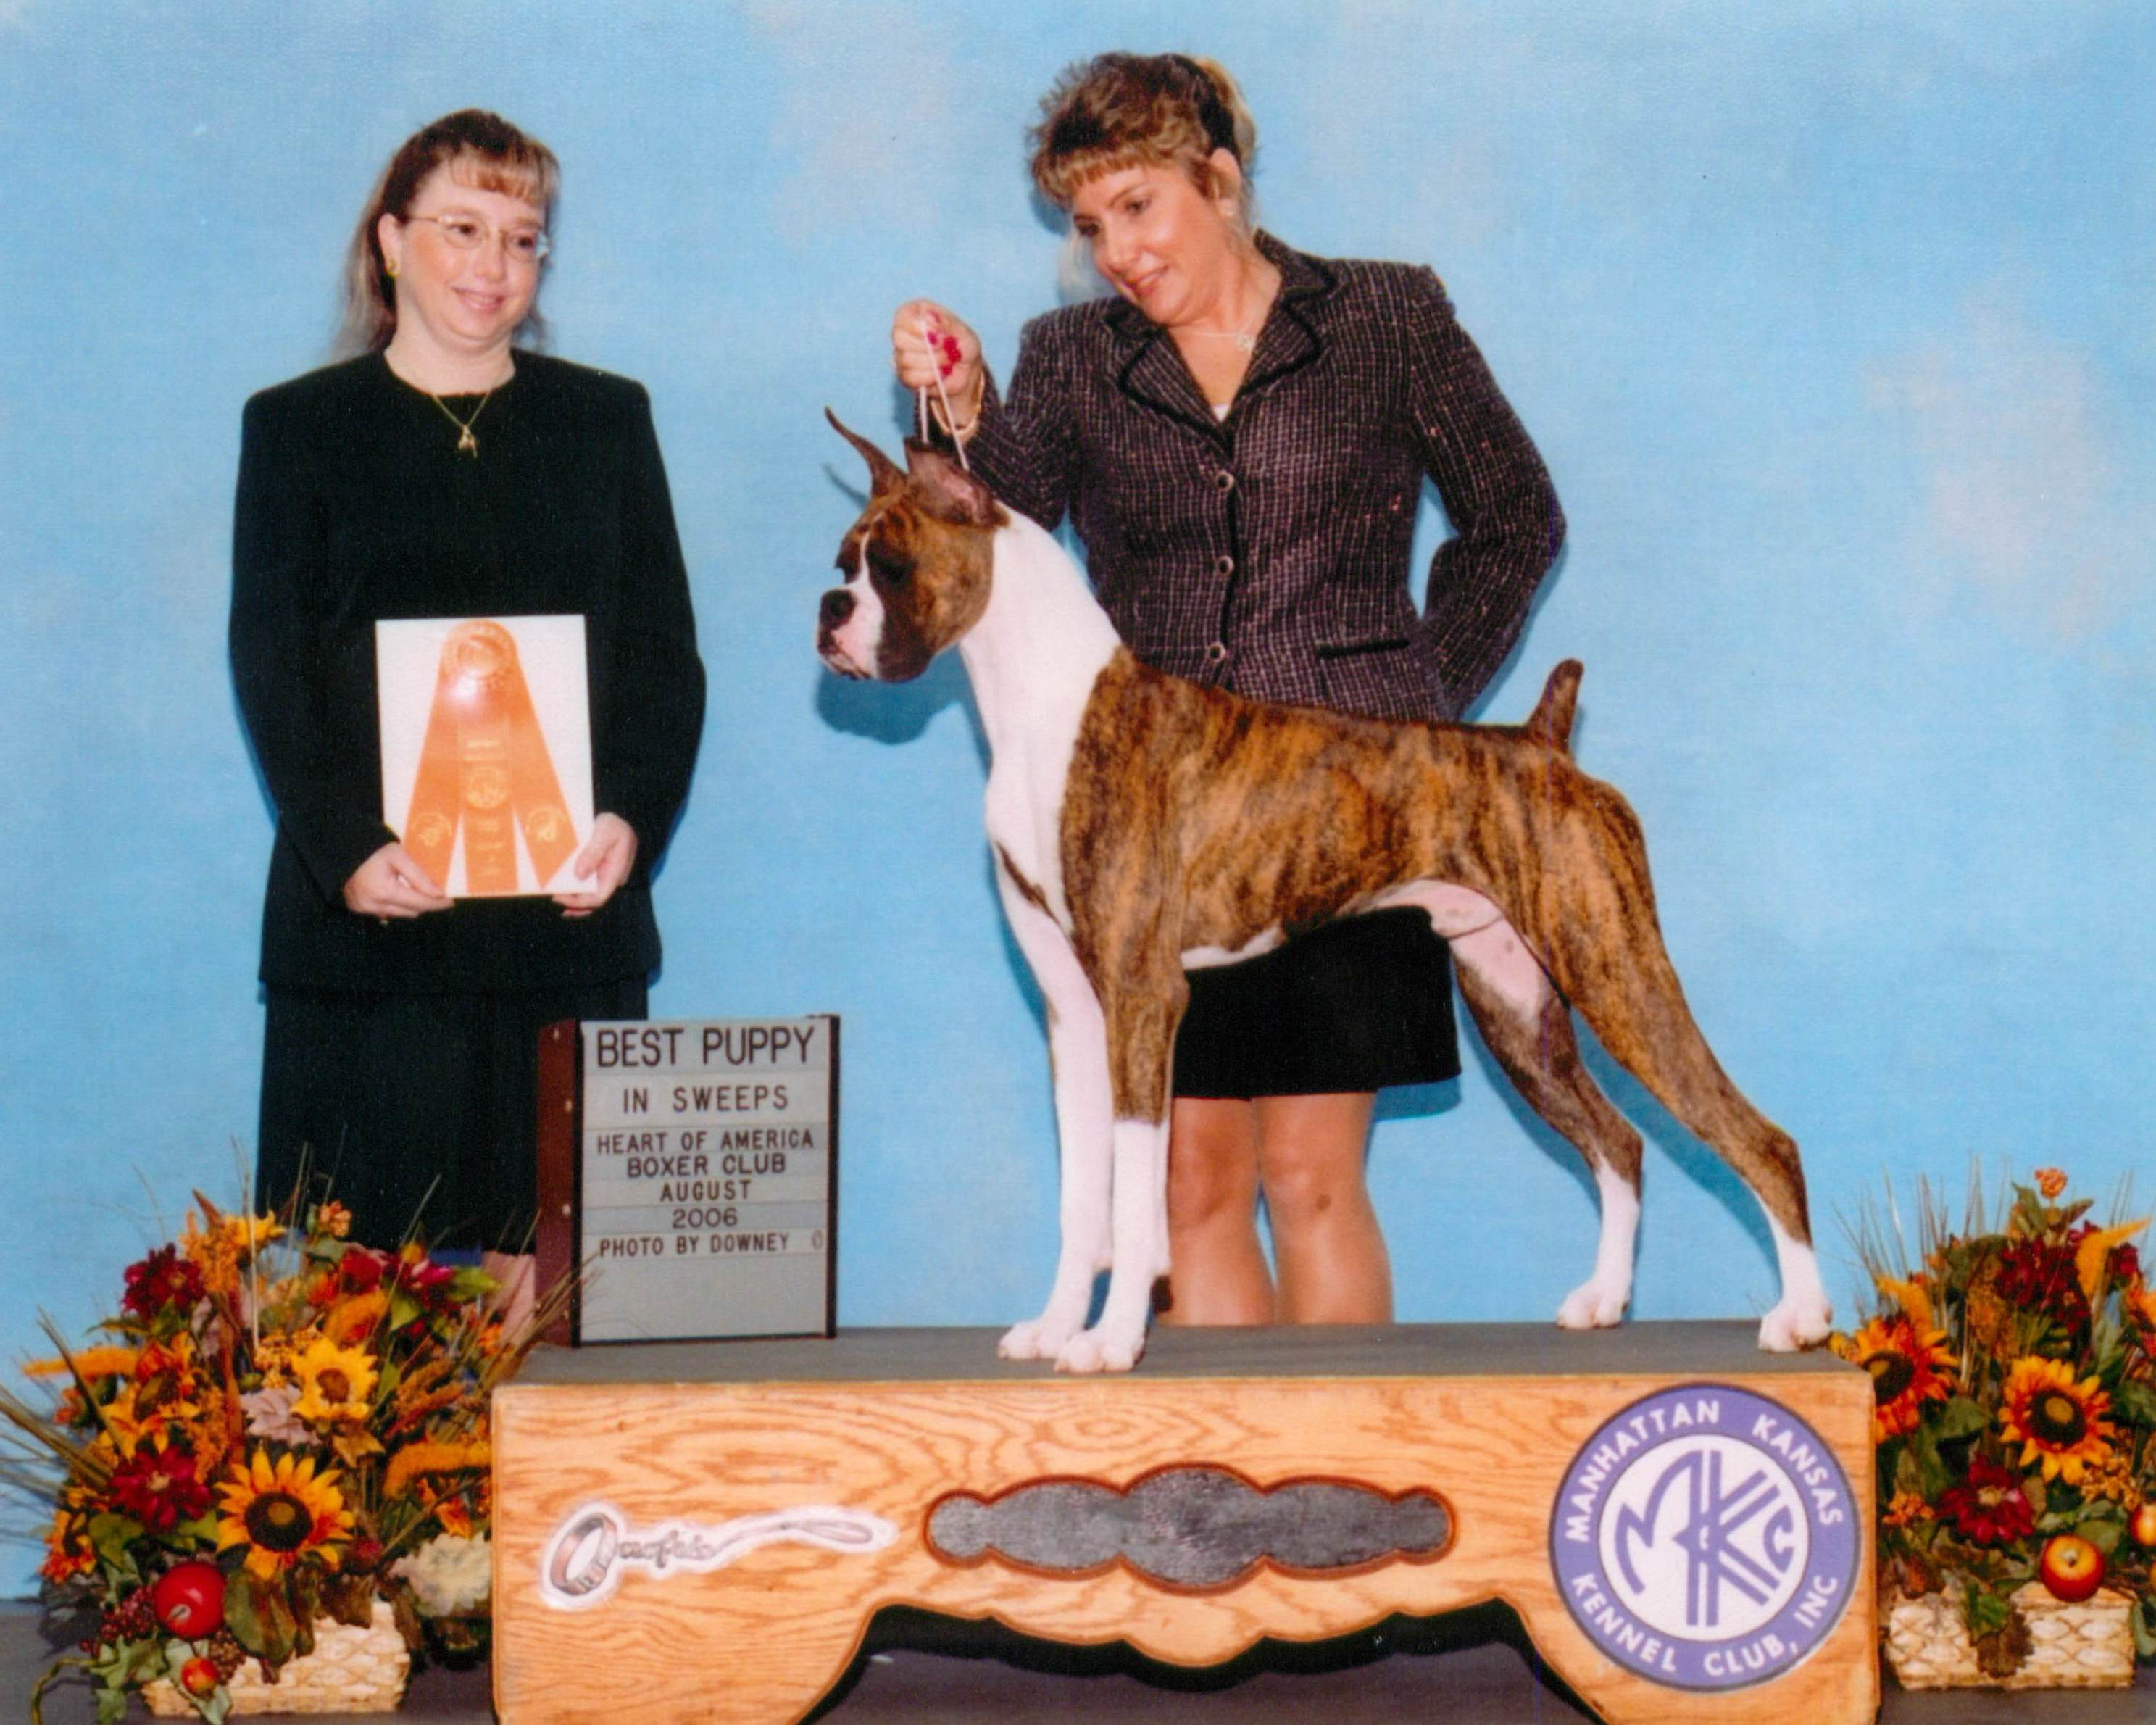 Best Puppy @ 2006 Specialty Show #2